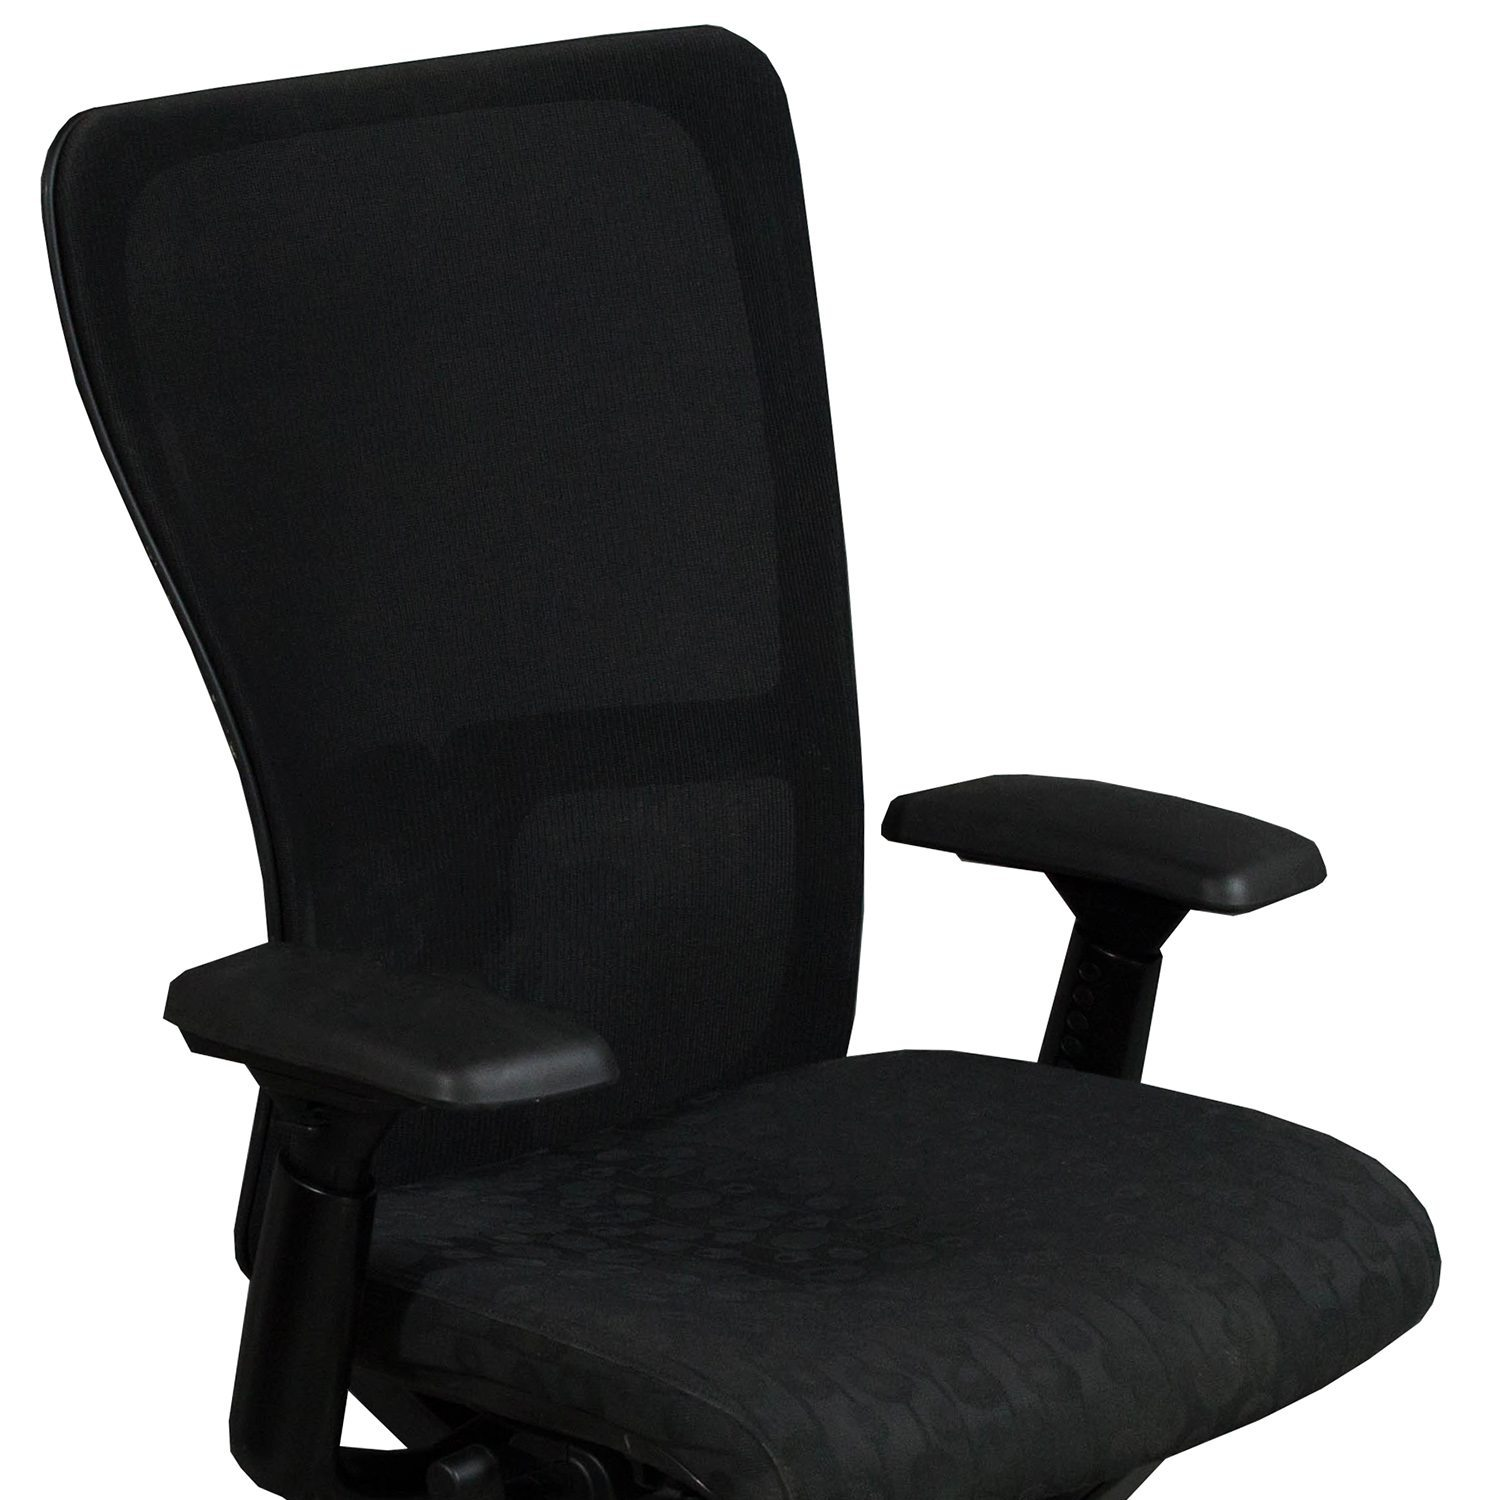 Haworth Zody Used Task Chair, Black Circle Pattern